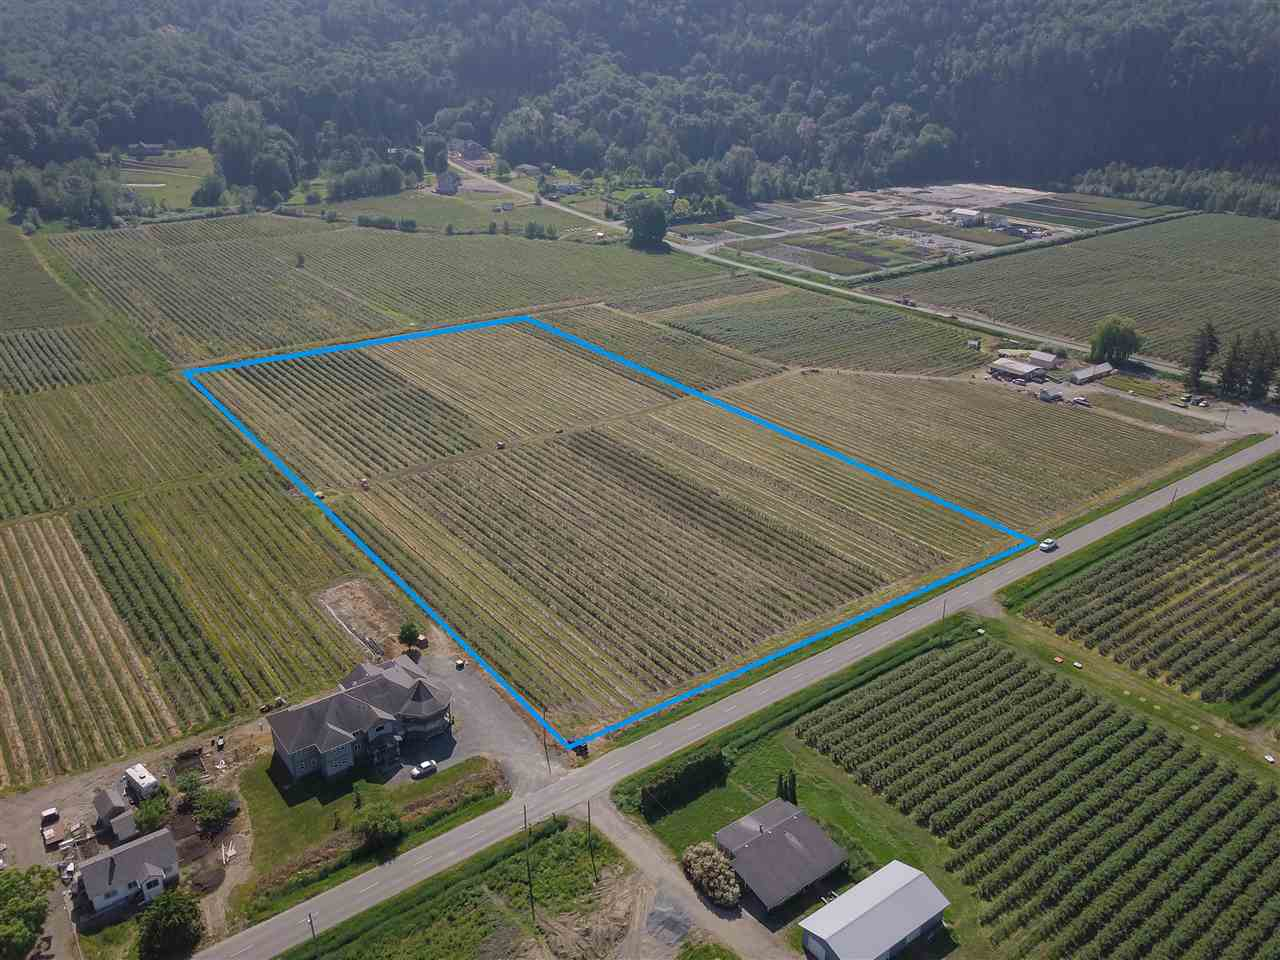 A good location to build your dream house on flat rectangular 10 acres. Lots of new homes on acerage built in this neighborhood. Income producing blueberry farm planted in Duke, Eilliot, Reka, and Blue crop. This property is less than 10 minutes drive from Abbotsford. Cross Roads are Hallert Rd & Beharrell Rd.